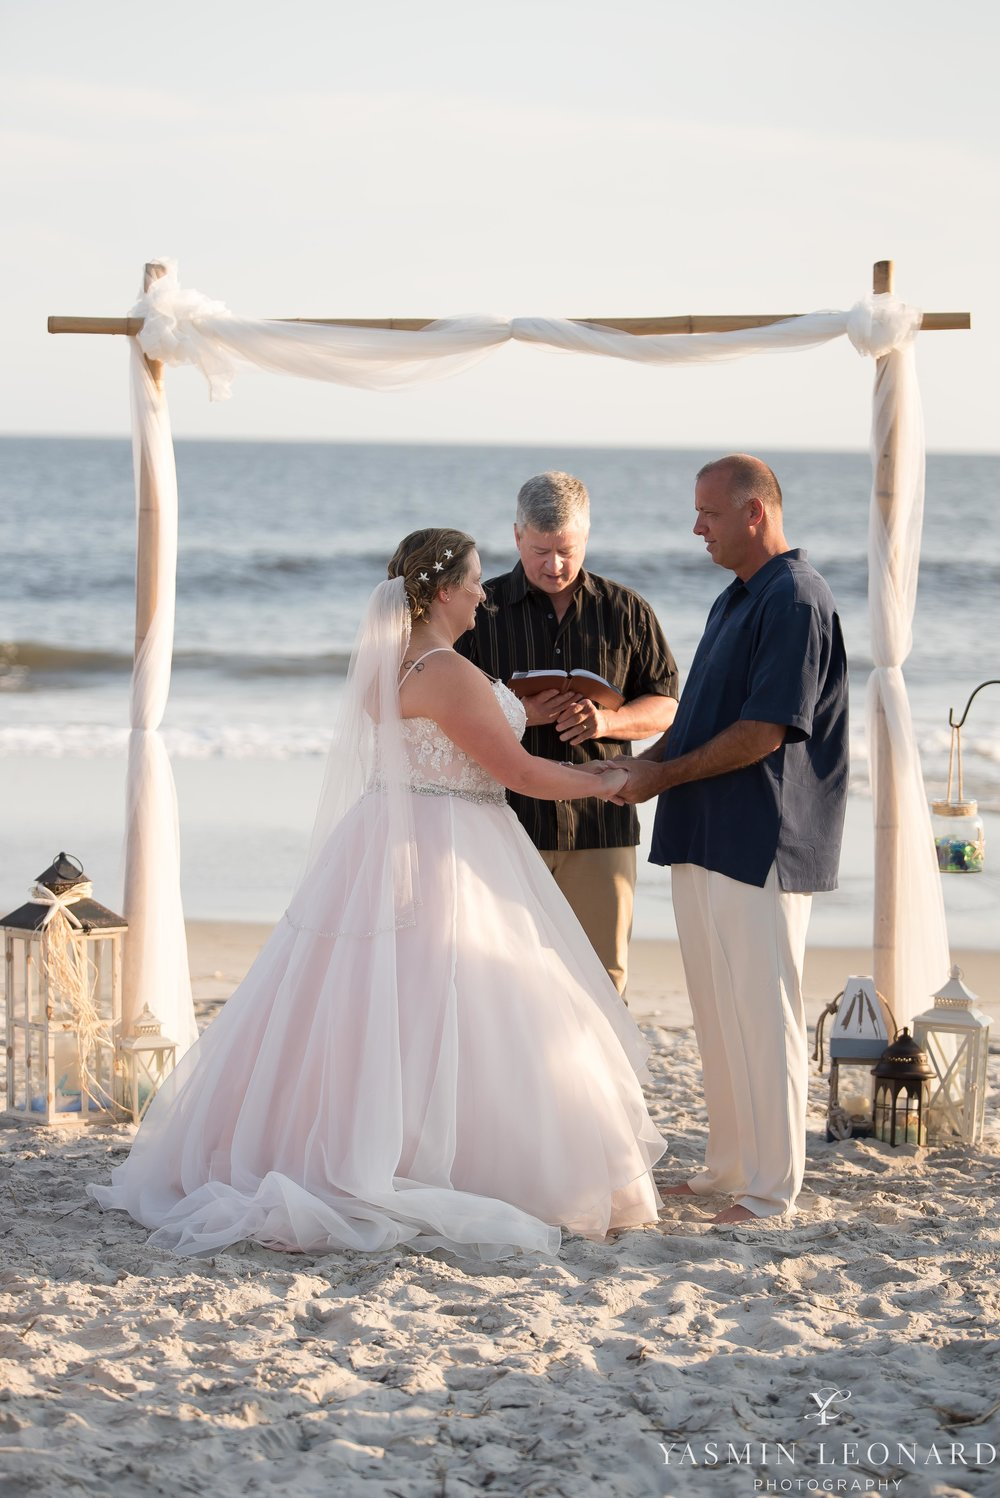 Oak Island _ Oak Island Wedding _ Beach Wedding_NC Beach Wedding_NC Destination Photographer_NC Wedding Photographer_Yasmin Leonard Photography_Beach Themed Wedding-23.jpg